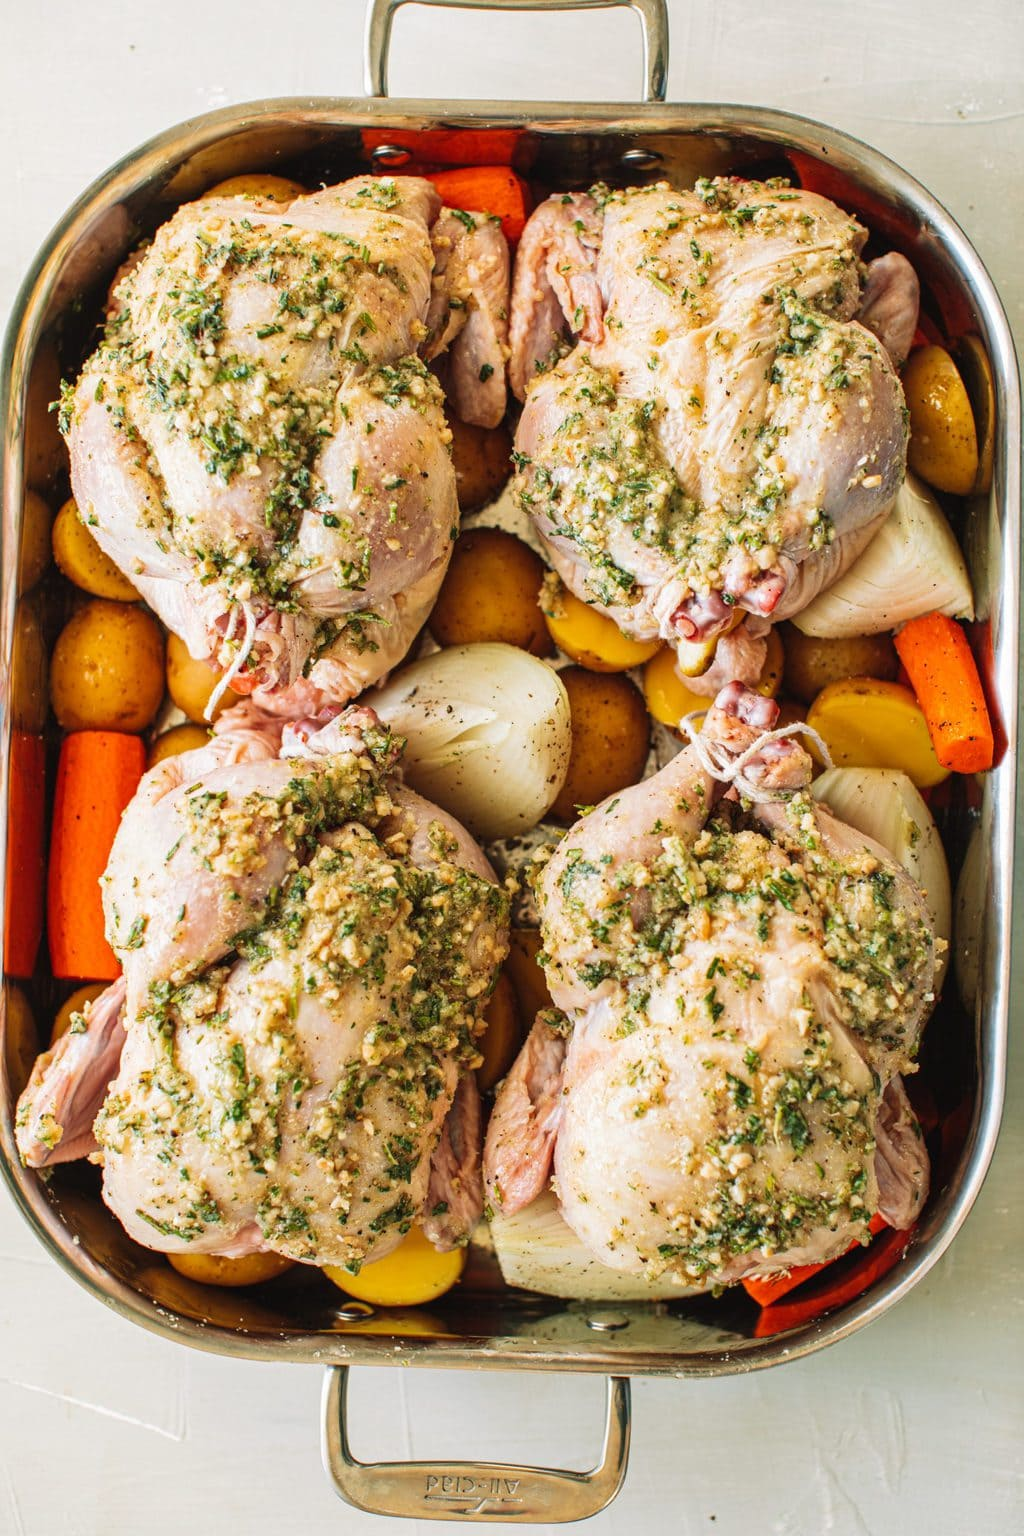 Four cornish hens set on top of carrots, onions and potatoes in a roasting dish before going into the oven